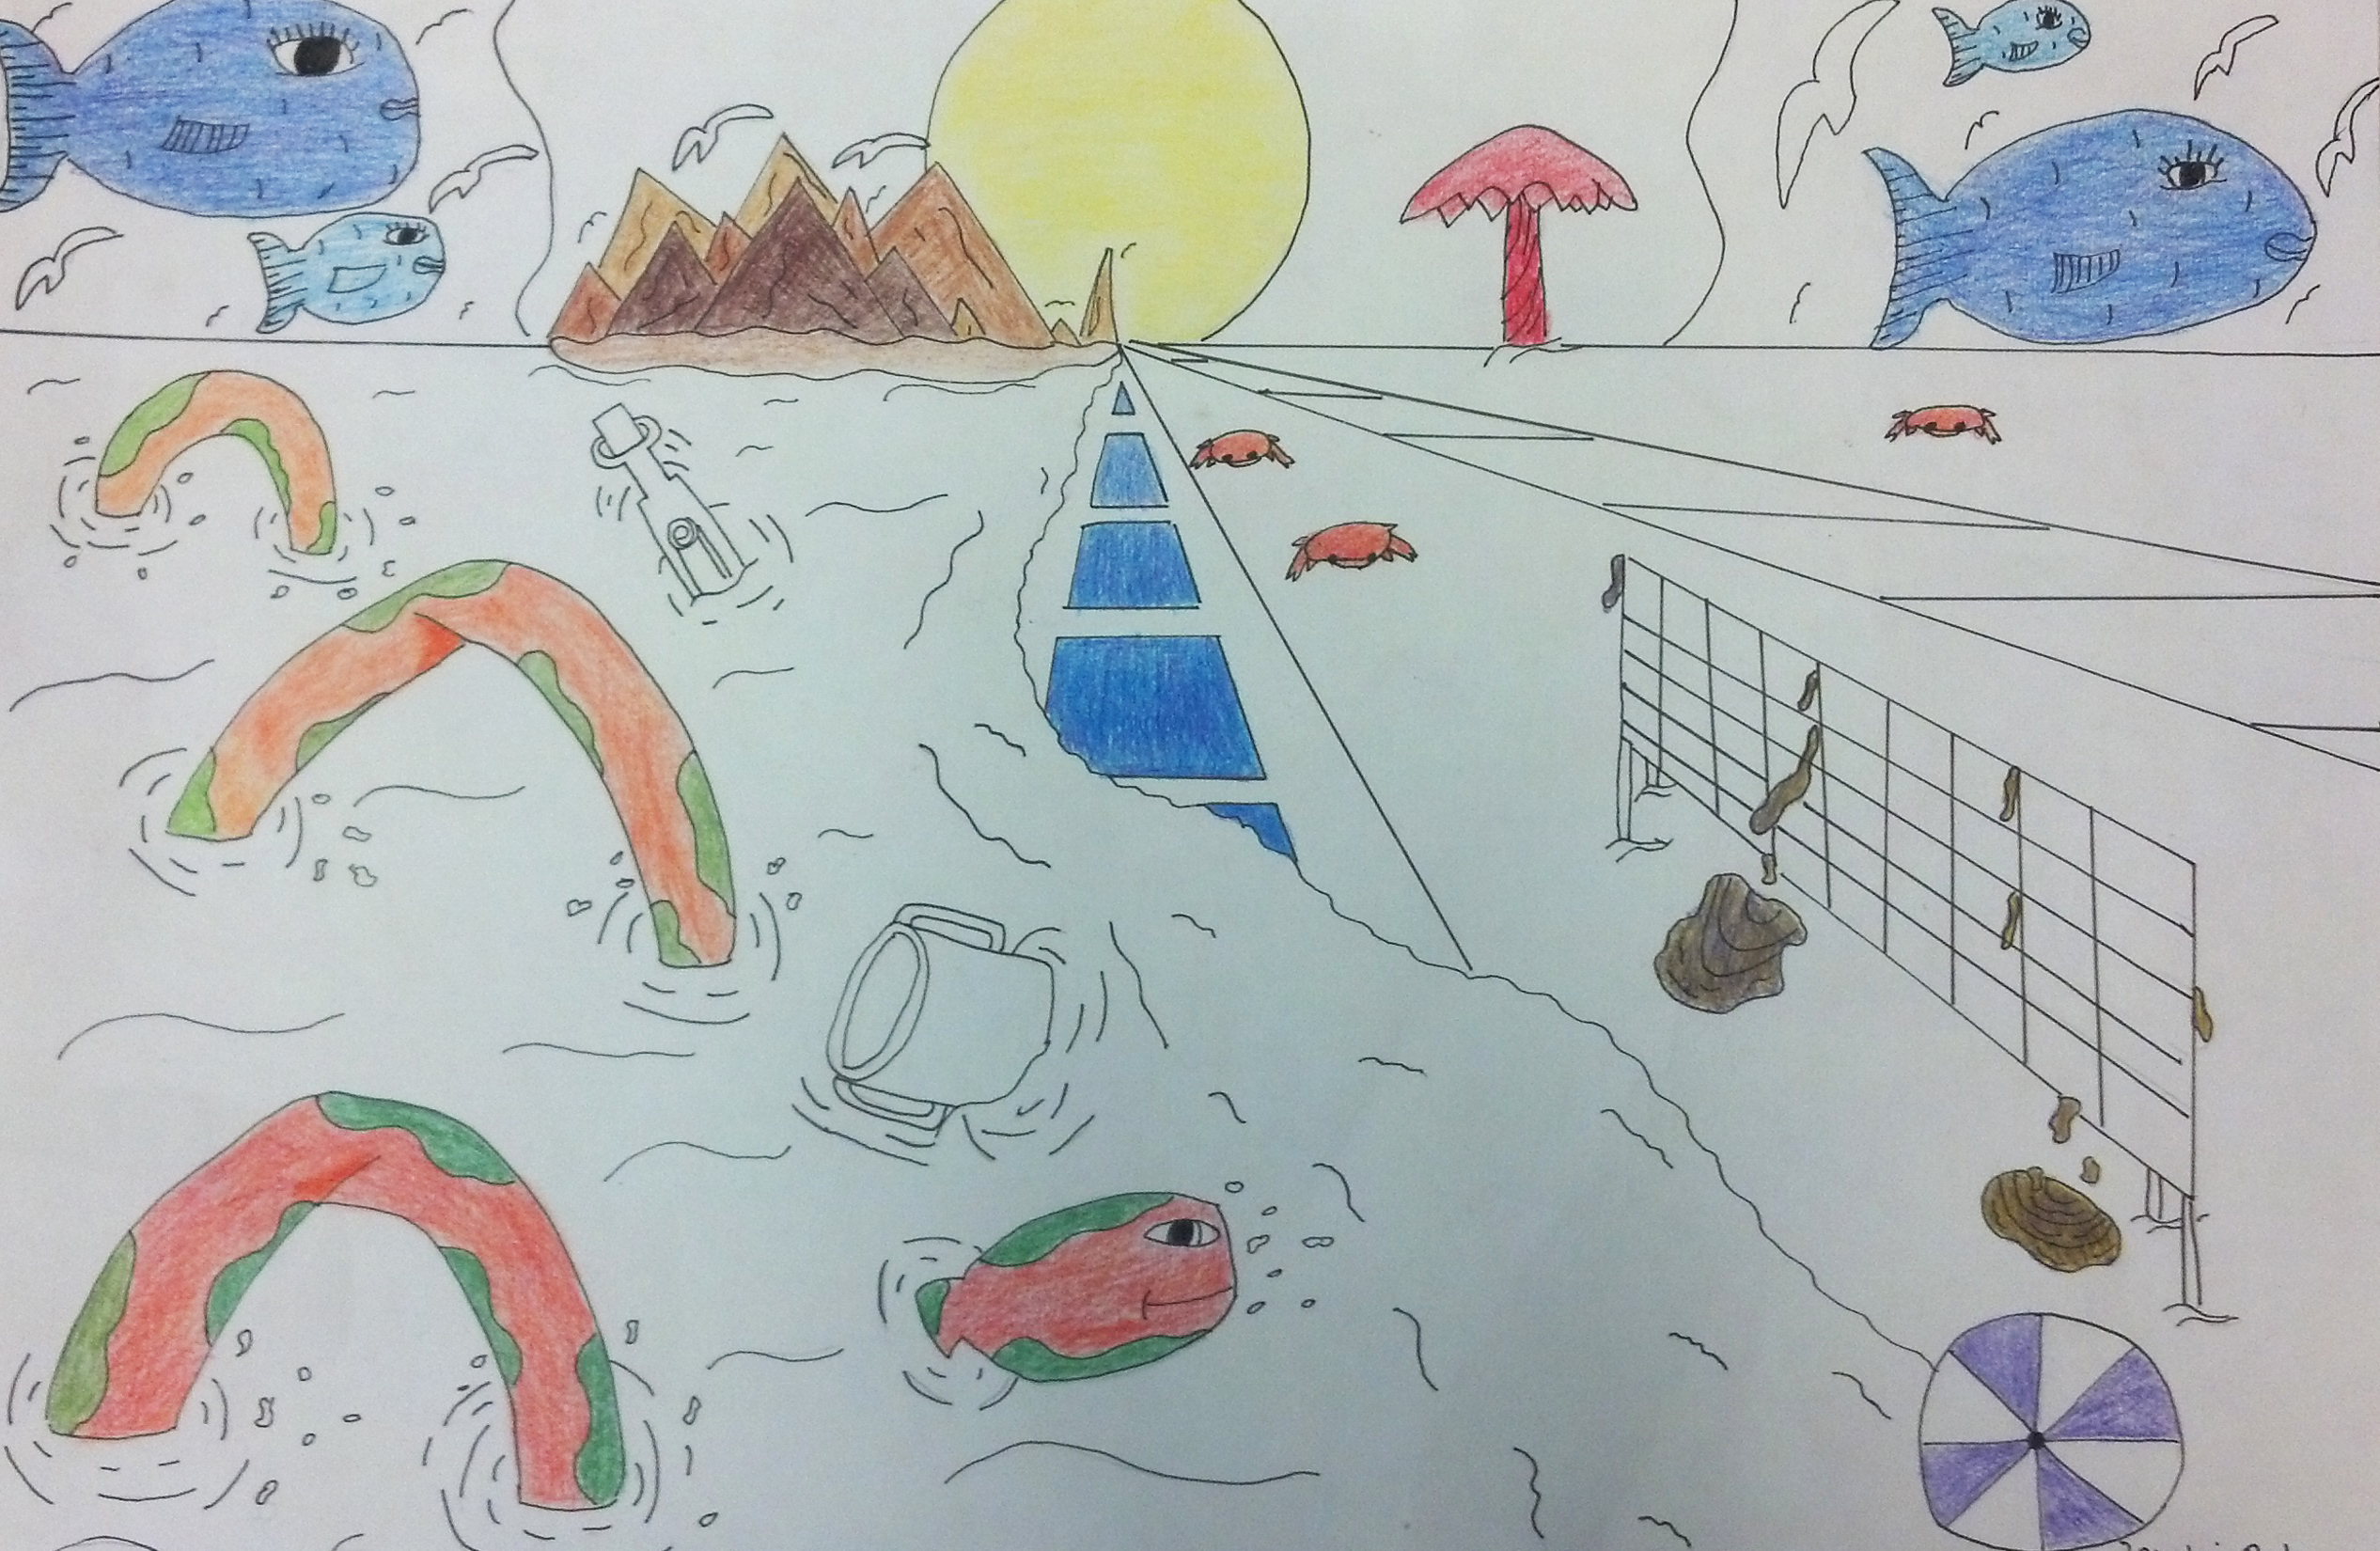 The Smartteacher Resource Surrealistic Perspective Lesson